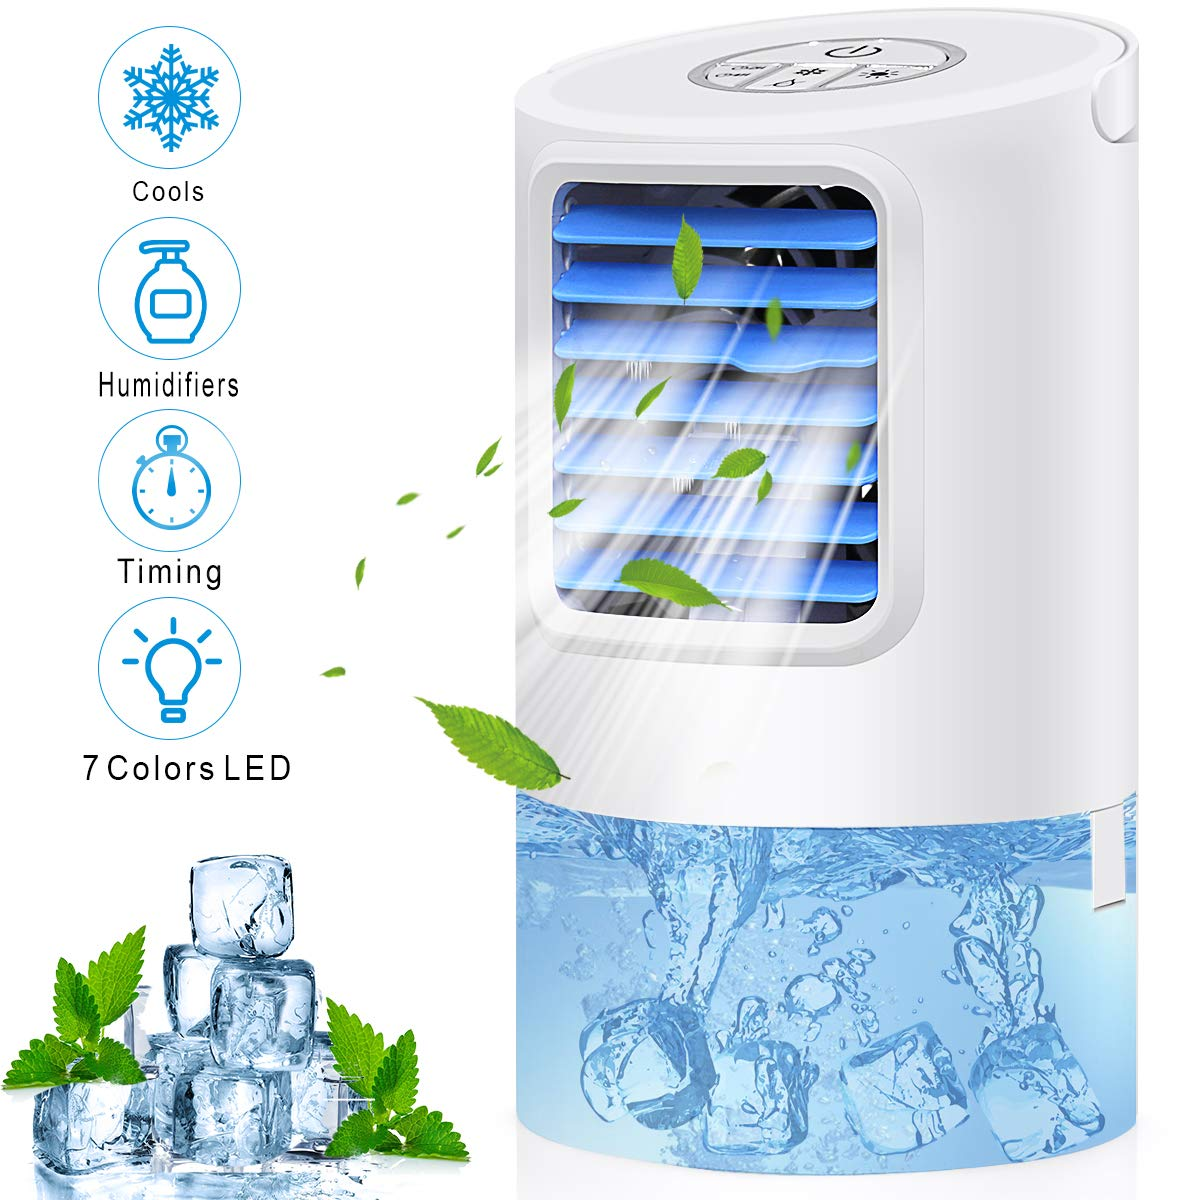 Portable Air Conditioner Fan,Personal Desk Fan Space Air Cooler Mini Table Evaporative AC Ultra-Quiet Purifier Cooling Fan with Handle and 7 Colors LED Lights for Home, Office, Dorm